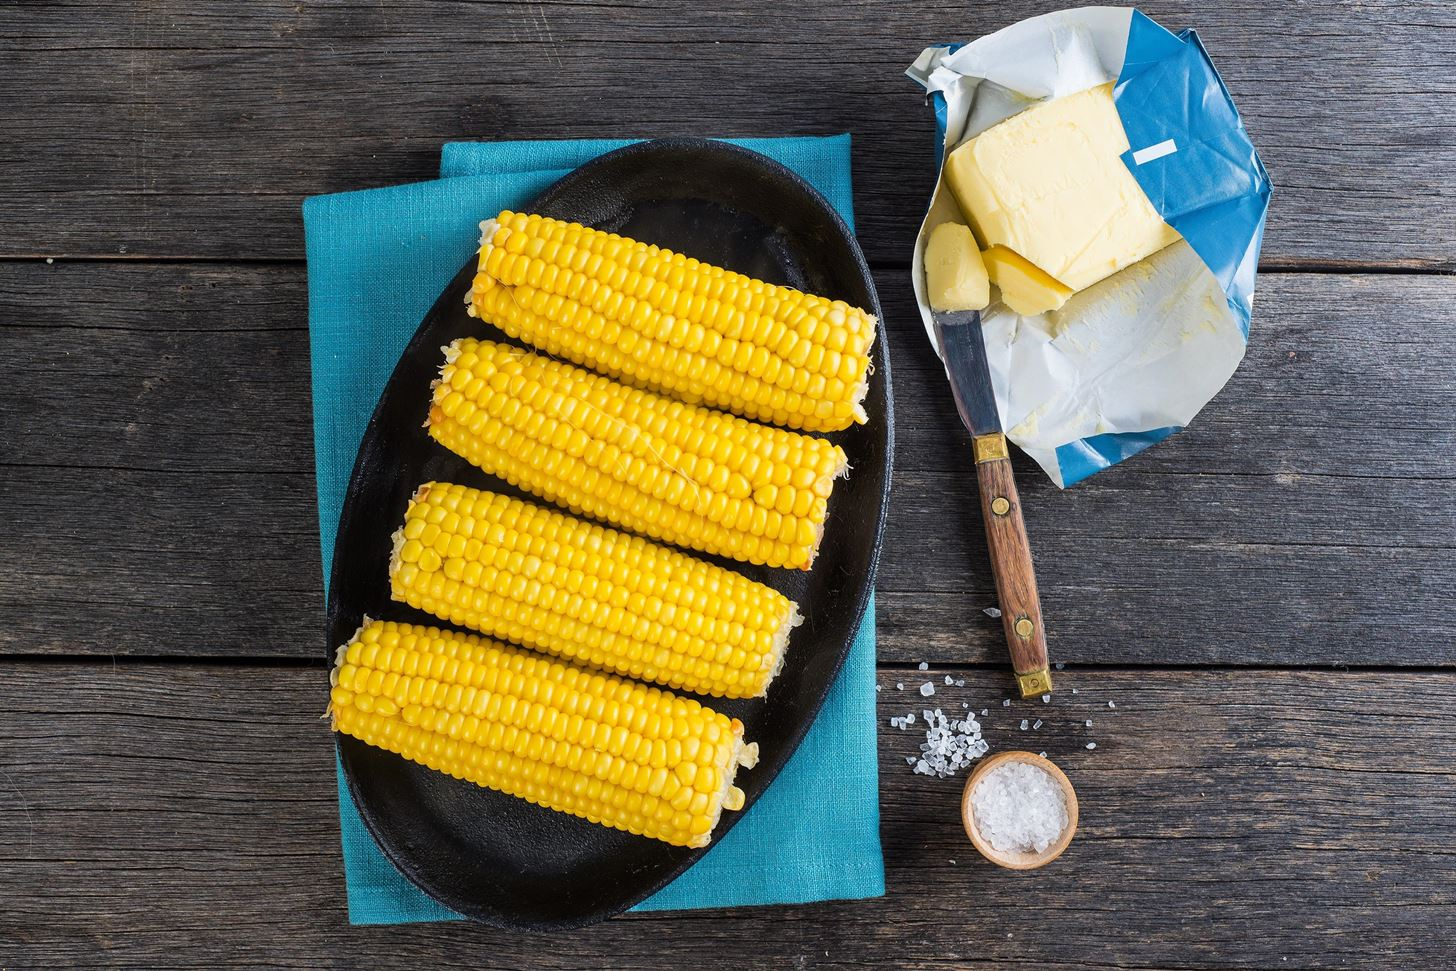 Genius—Butter Corn on the Cob While You're Cooking It, Not After